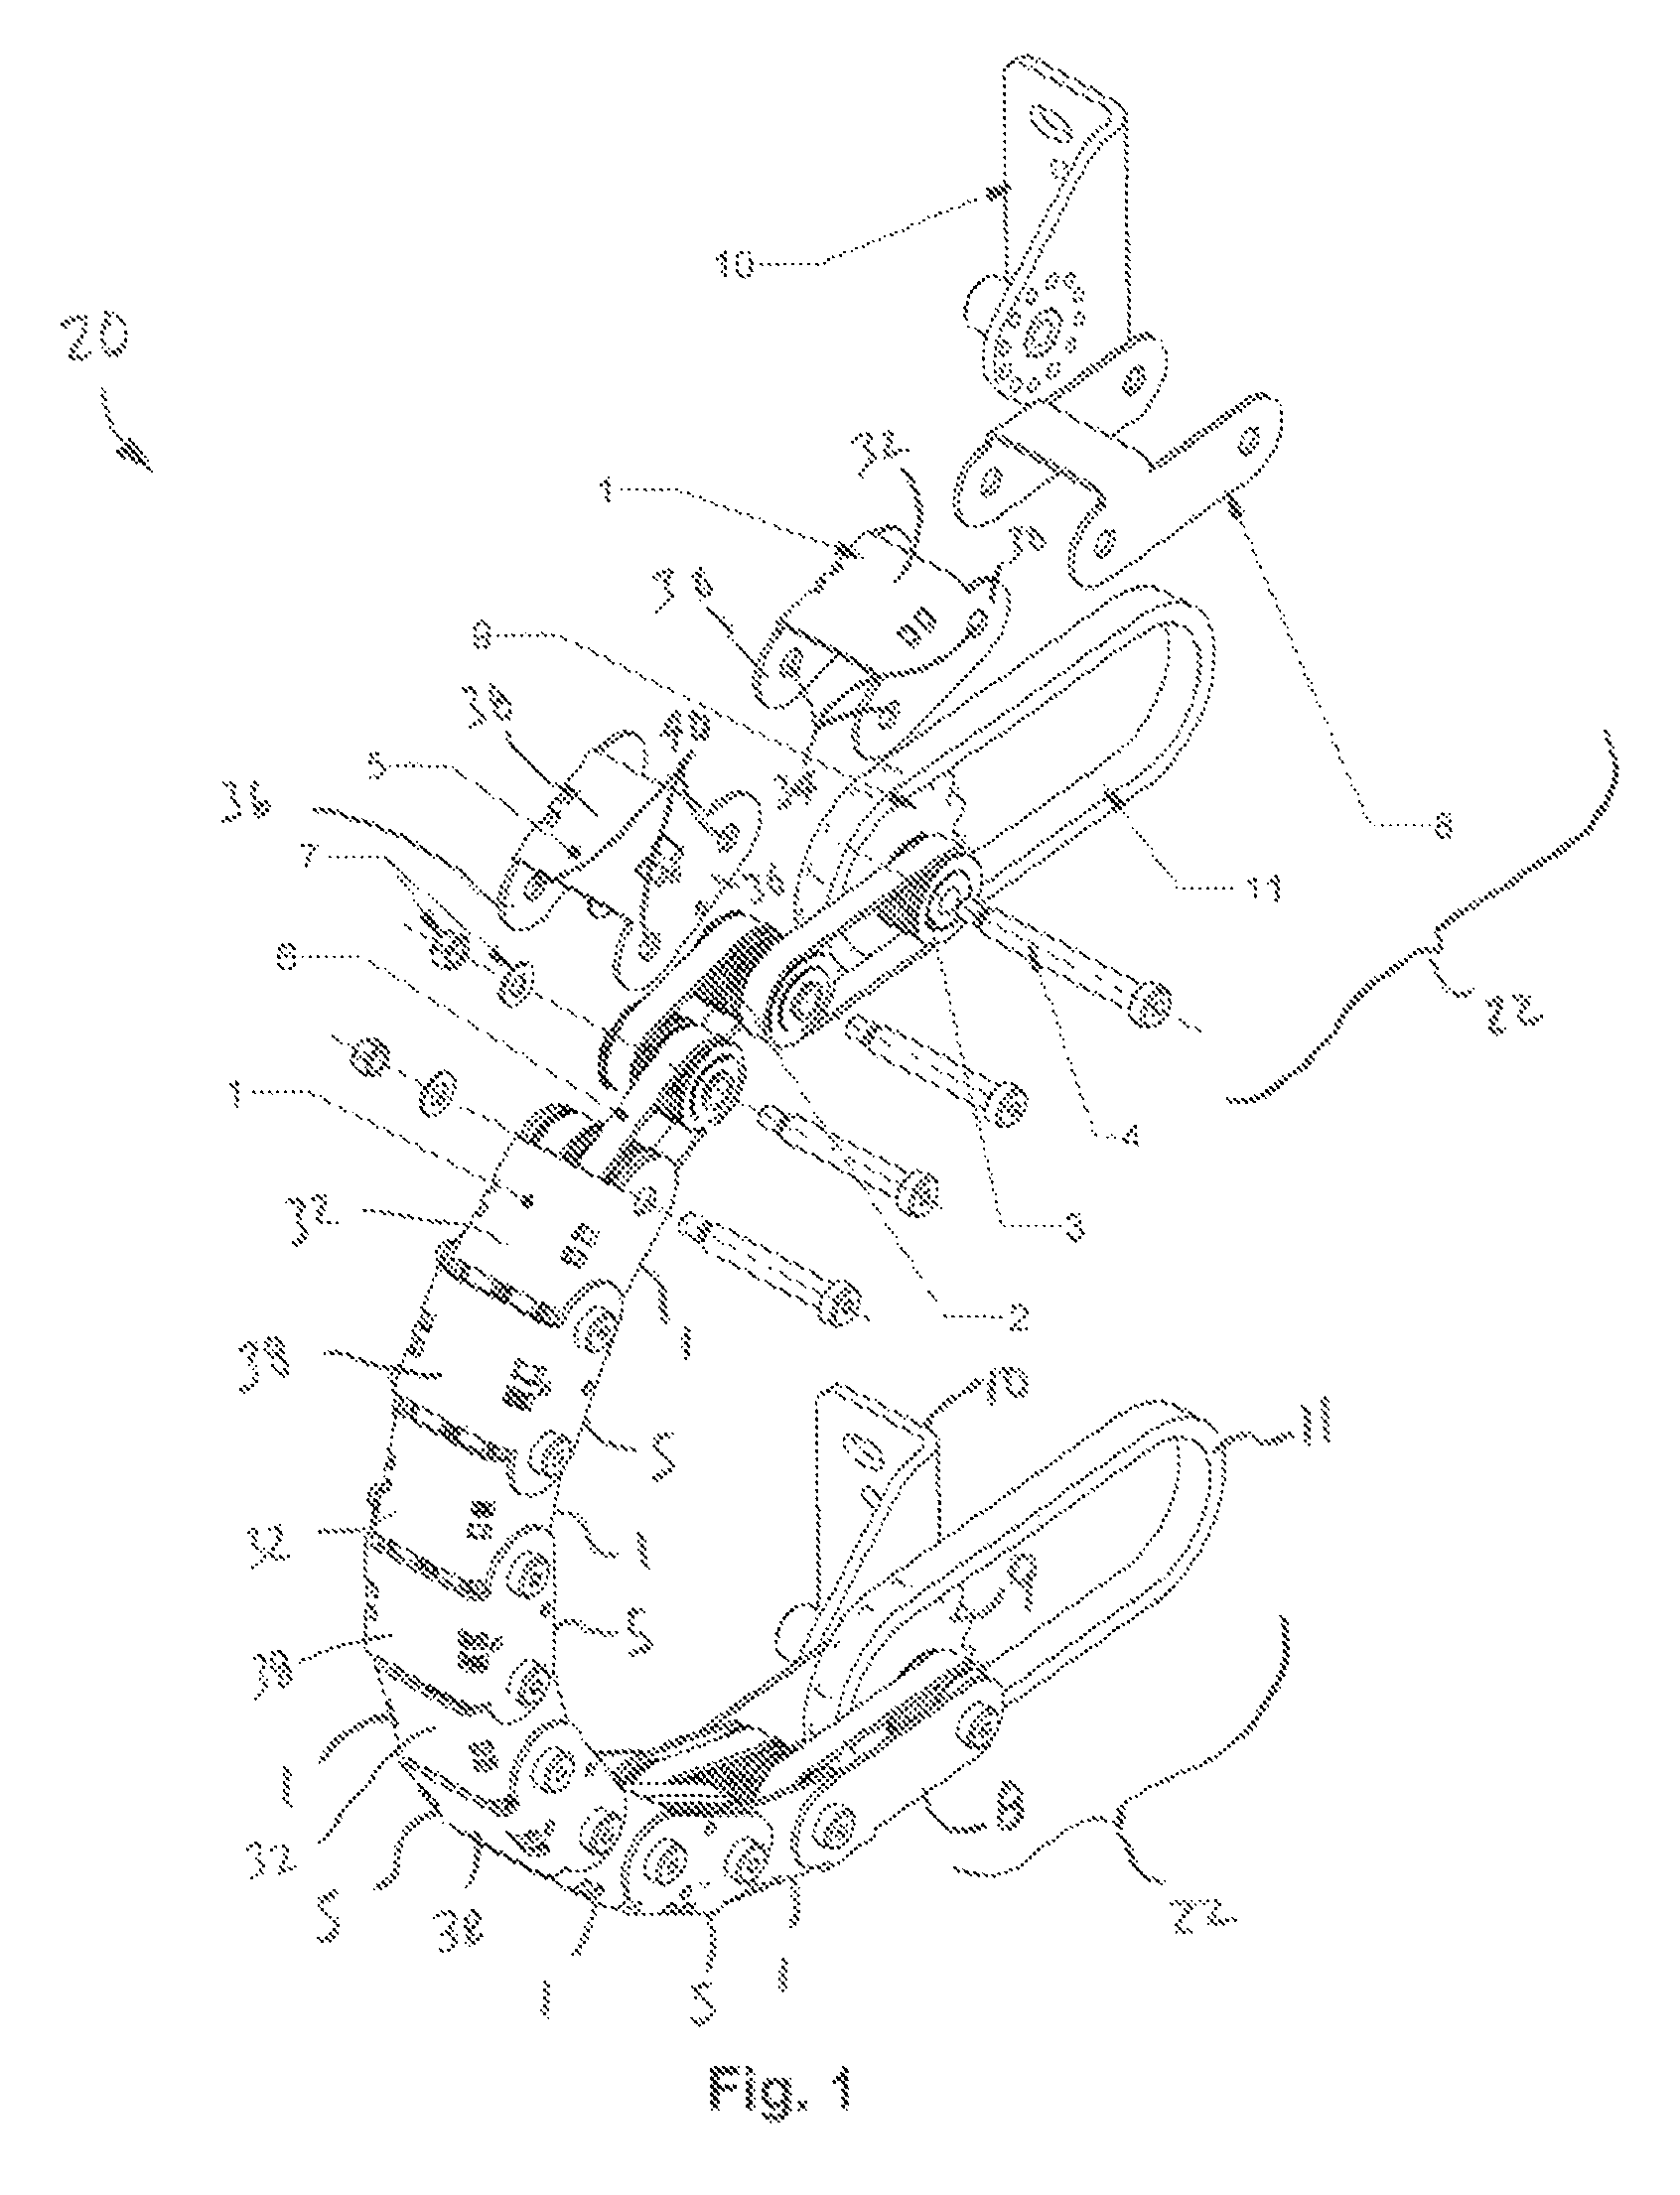 Integrally driven linkage for industrial/commercial equipment Patent Figure 1